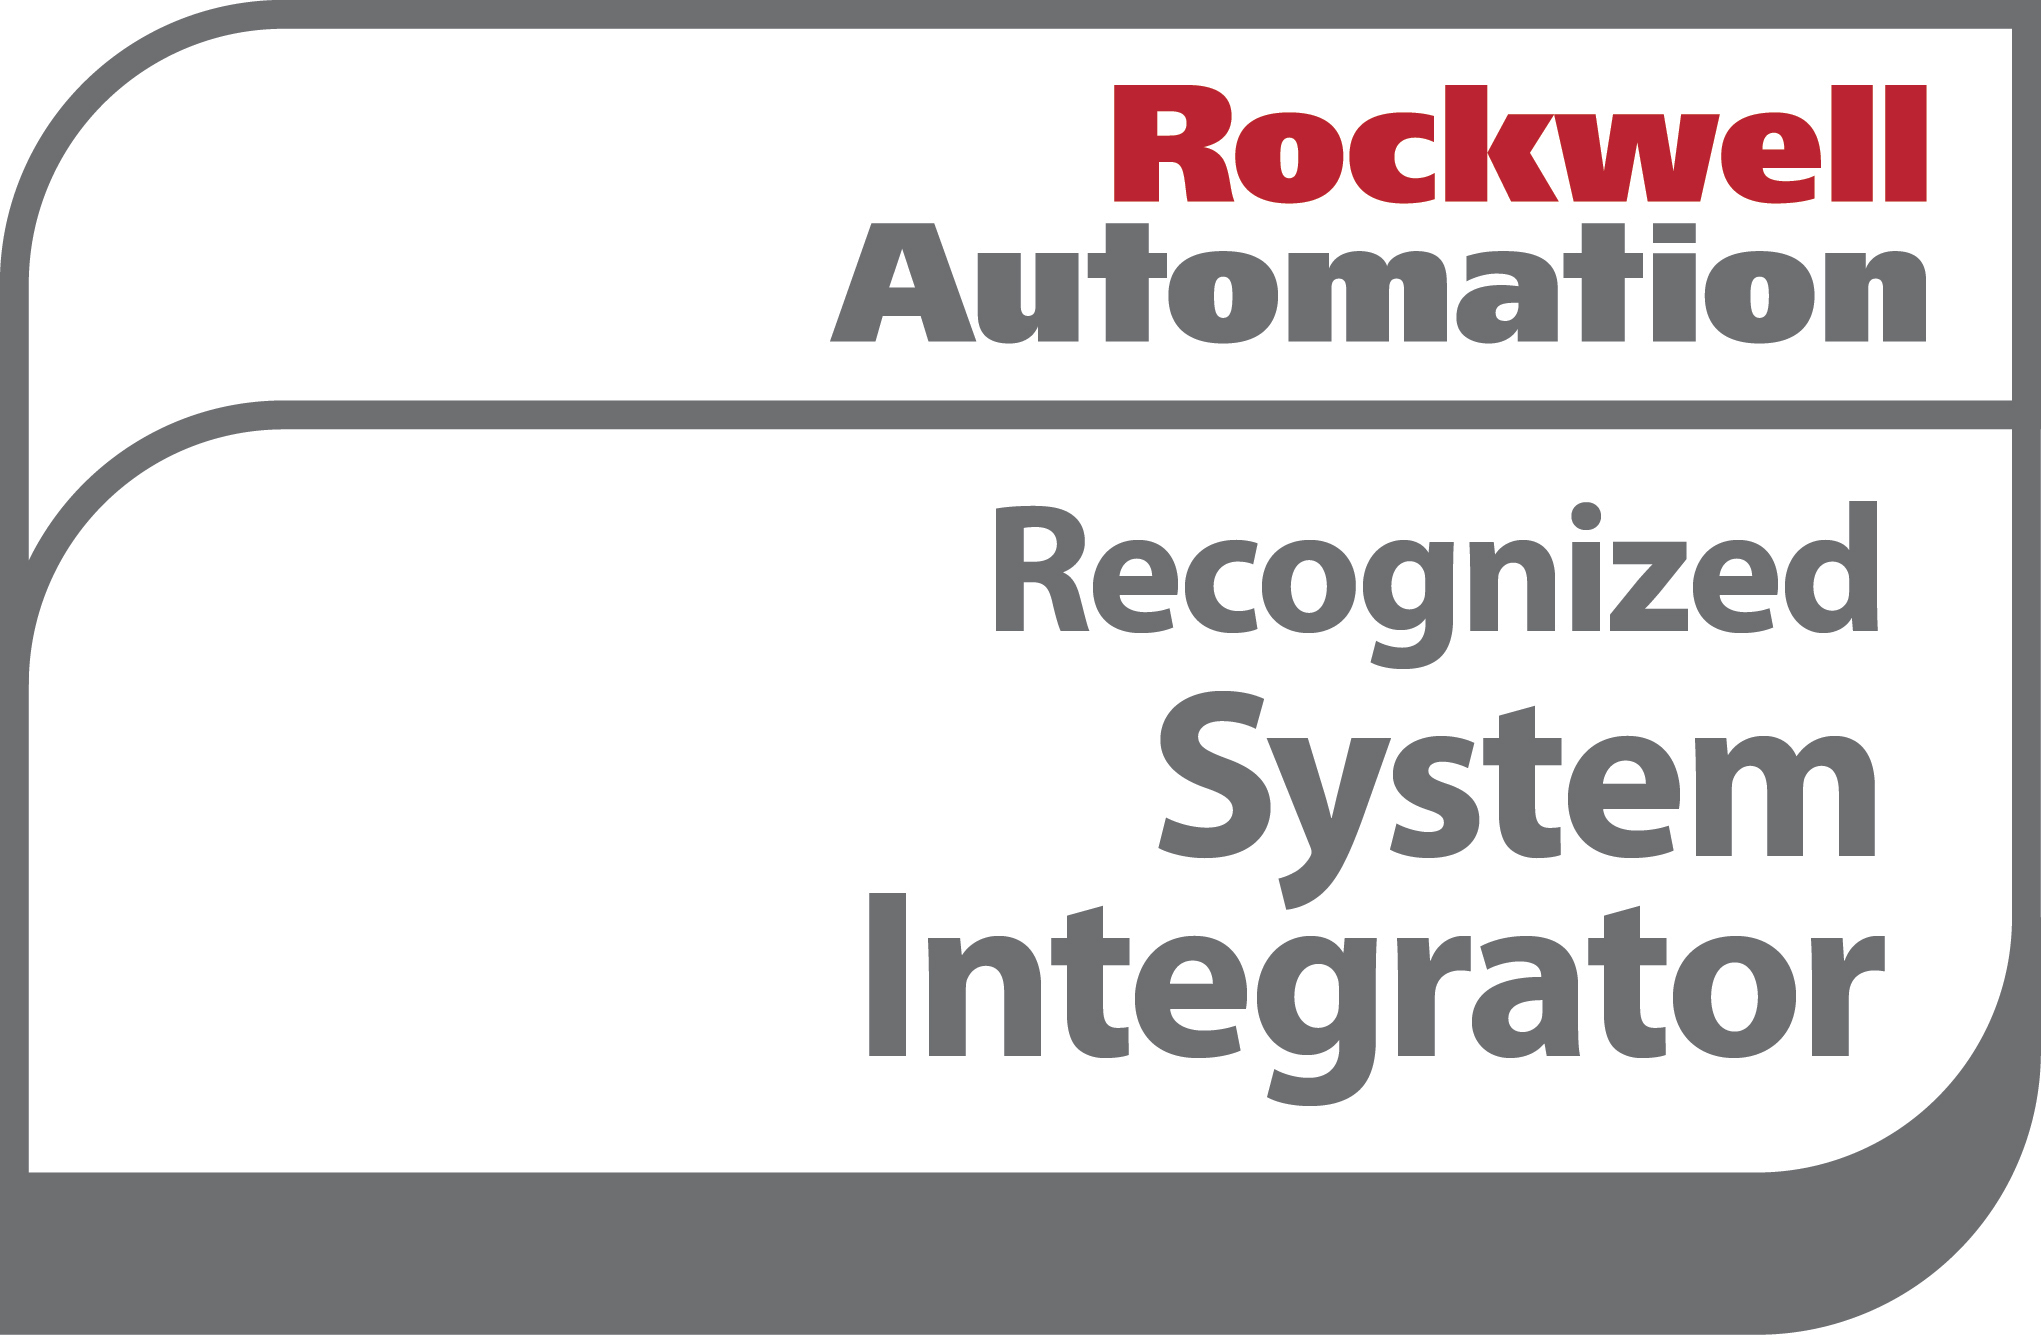 VAI Rockwell Automation